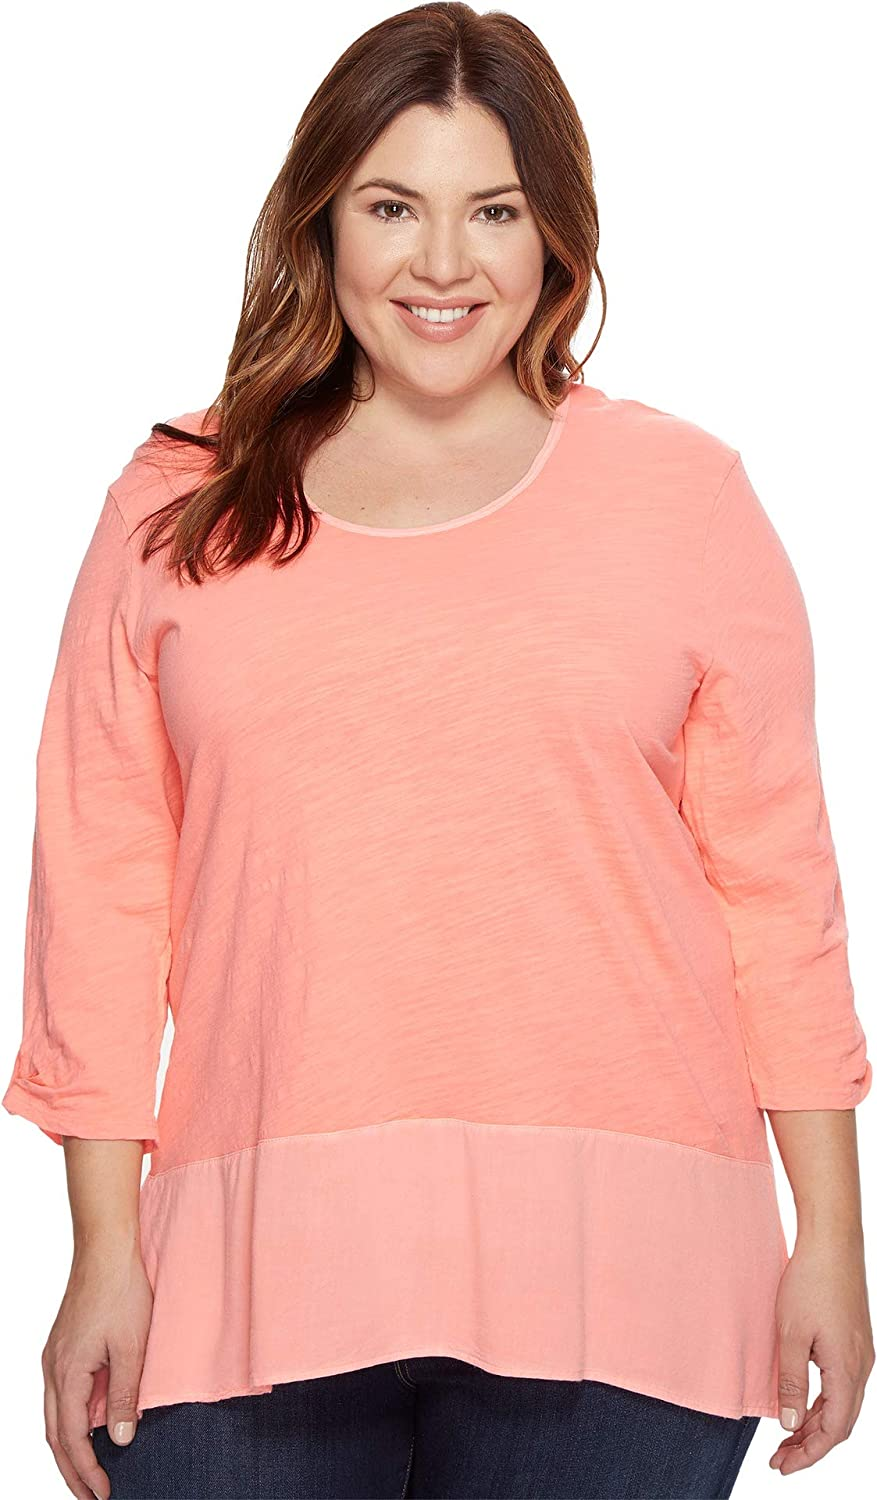 Extra Fresh by Fresh Produce Womens Plus Size Windfall Top